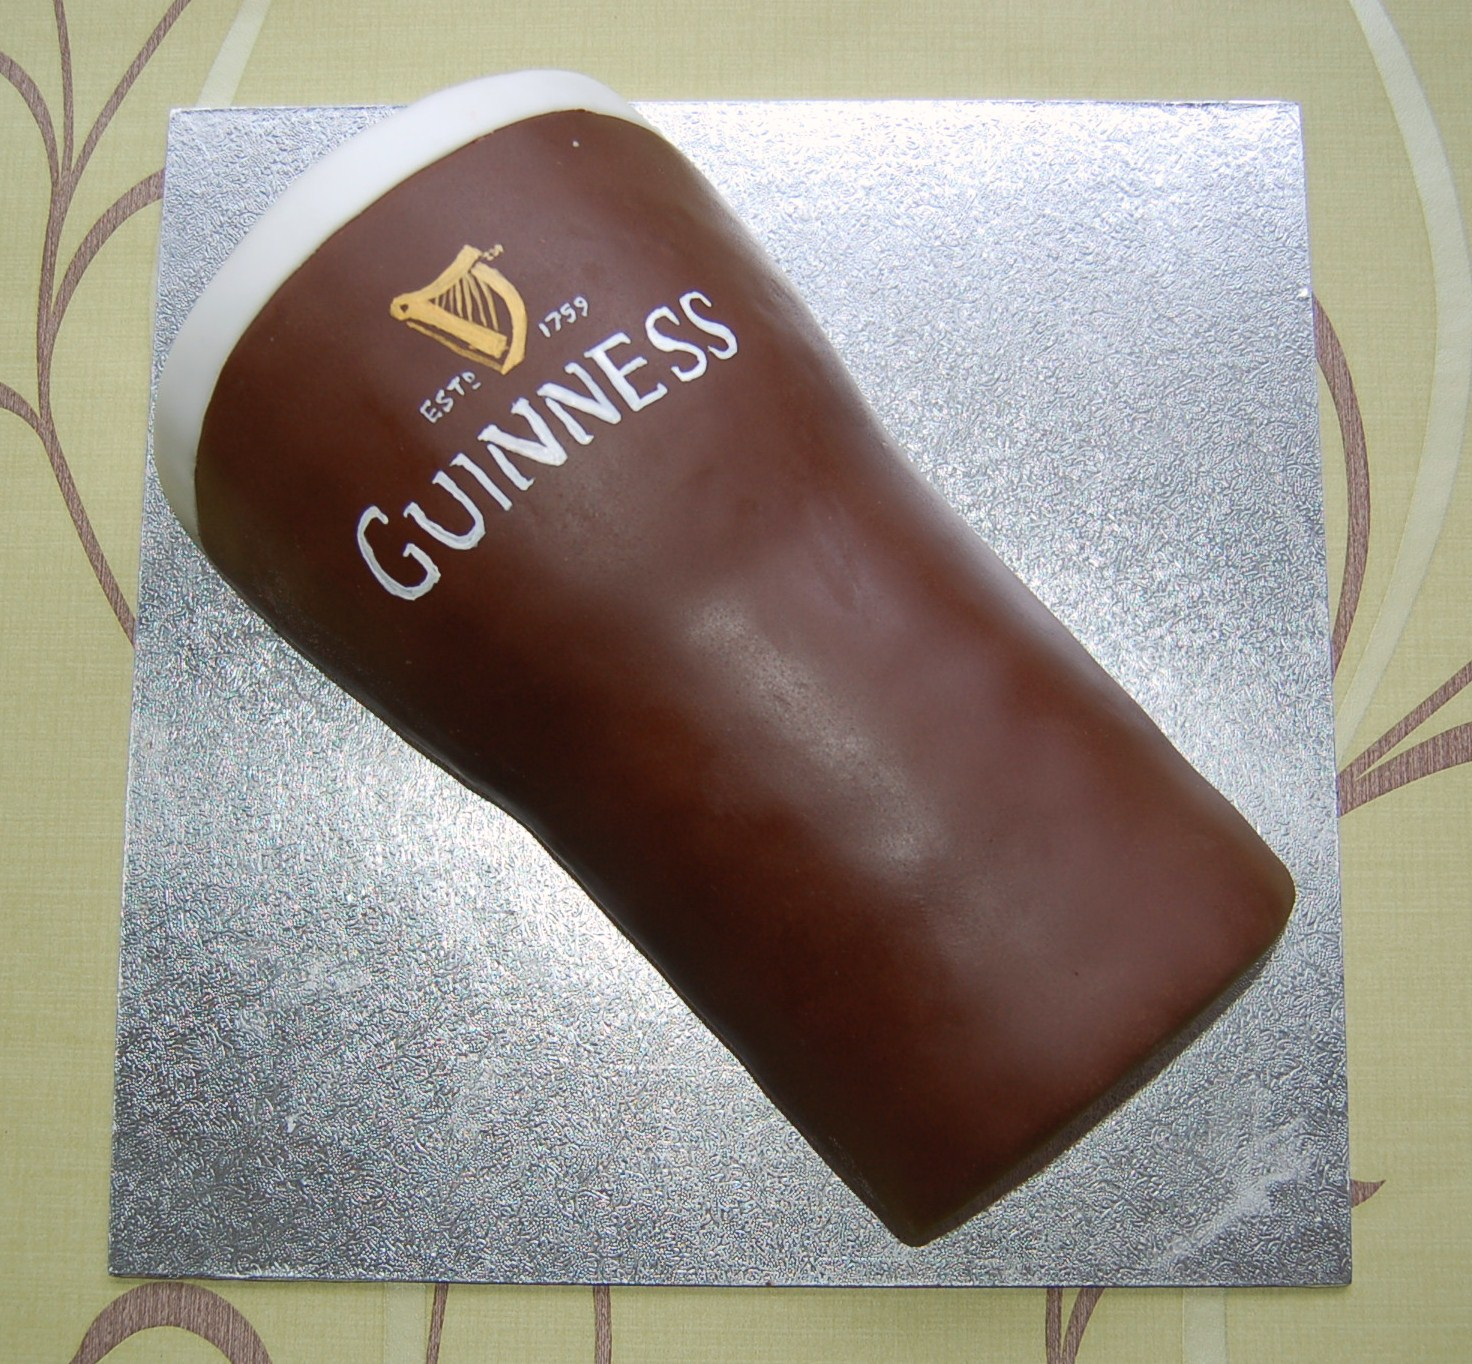 How To Make A Pint Glass Cake